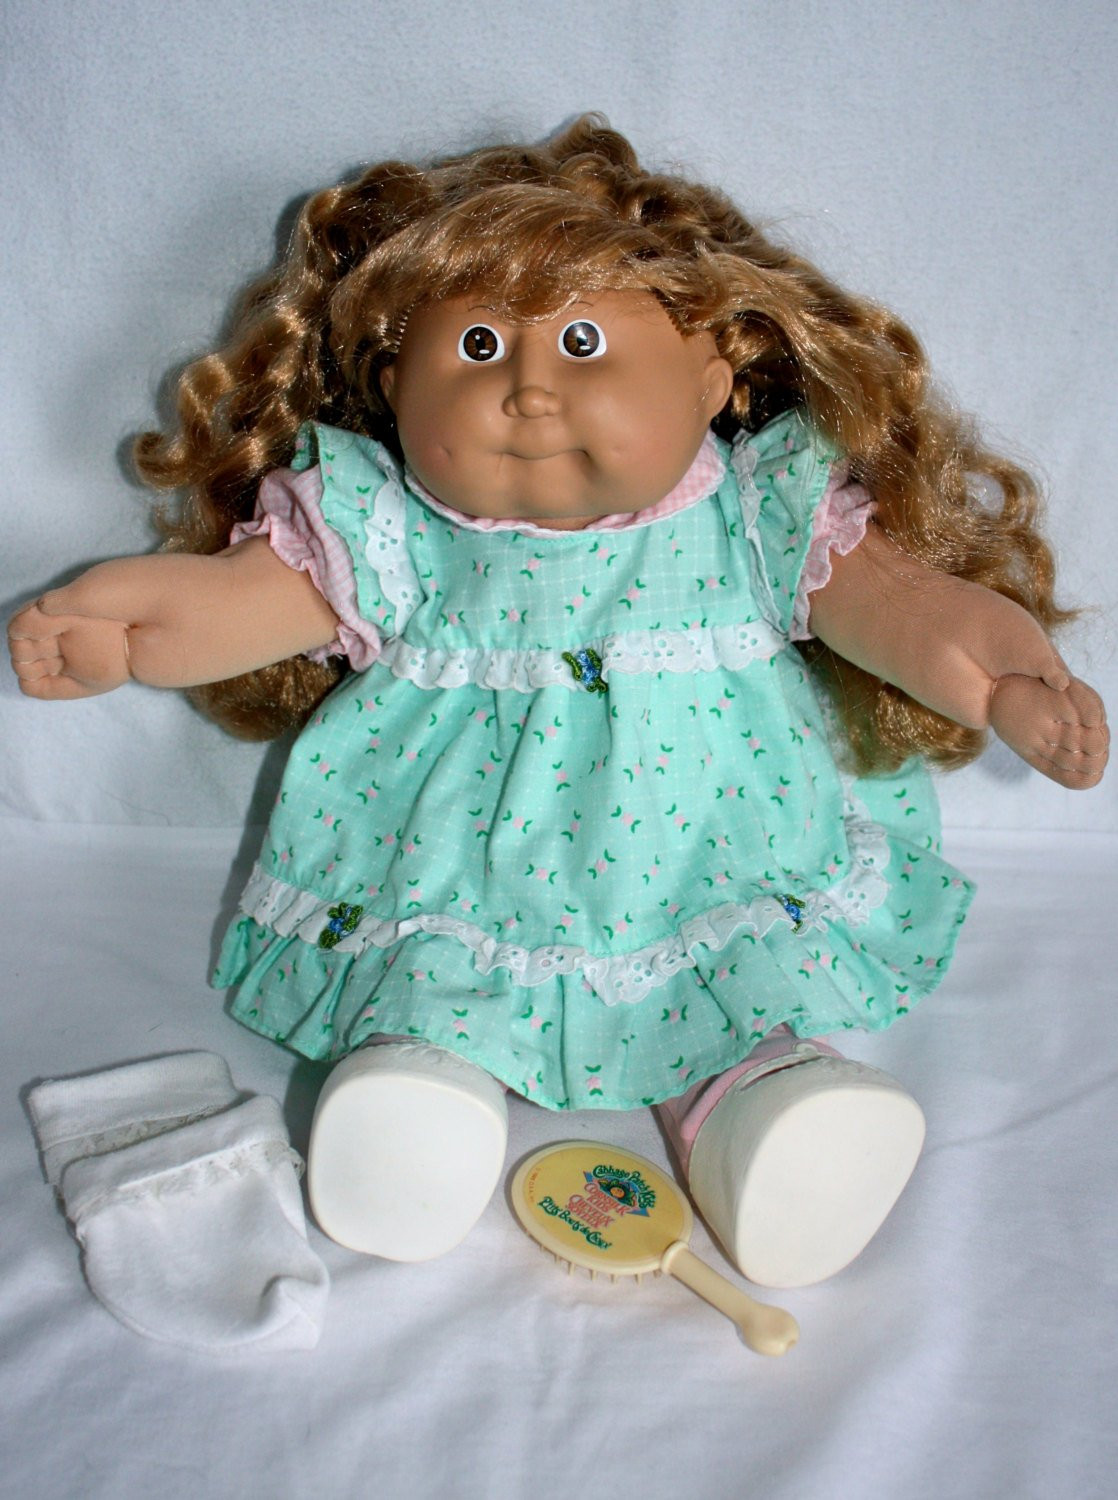 Vintage 1980s Original Cabbage Patch Doll with Real Blond